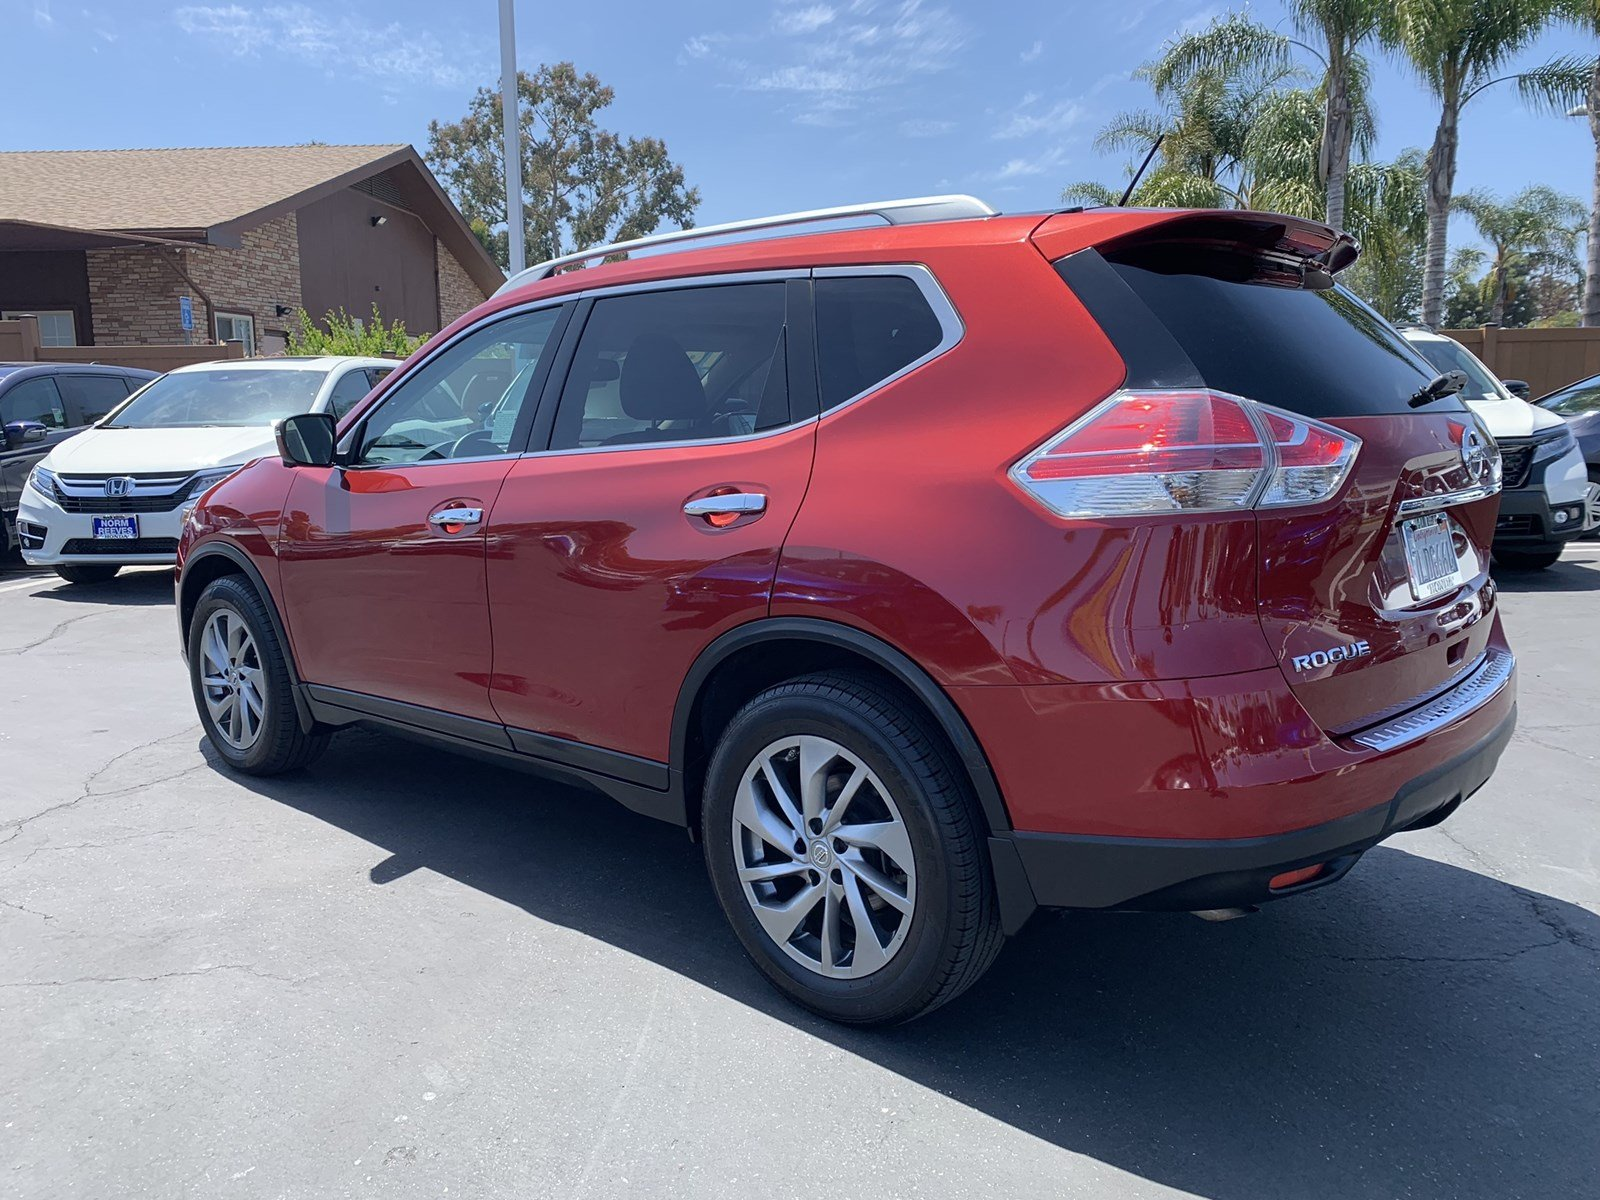 Pre-Owned 2015 Nissan Rogue SL